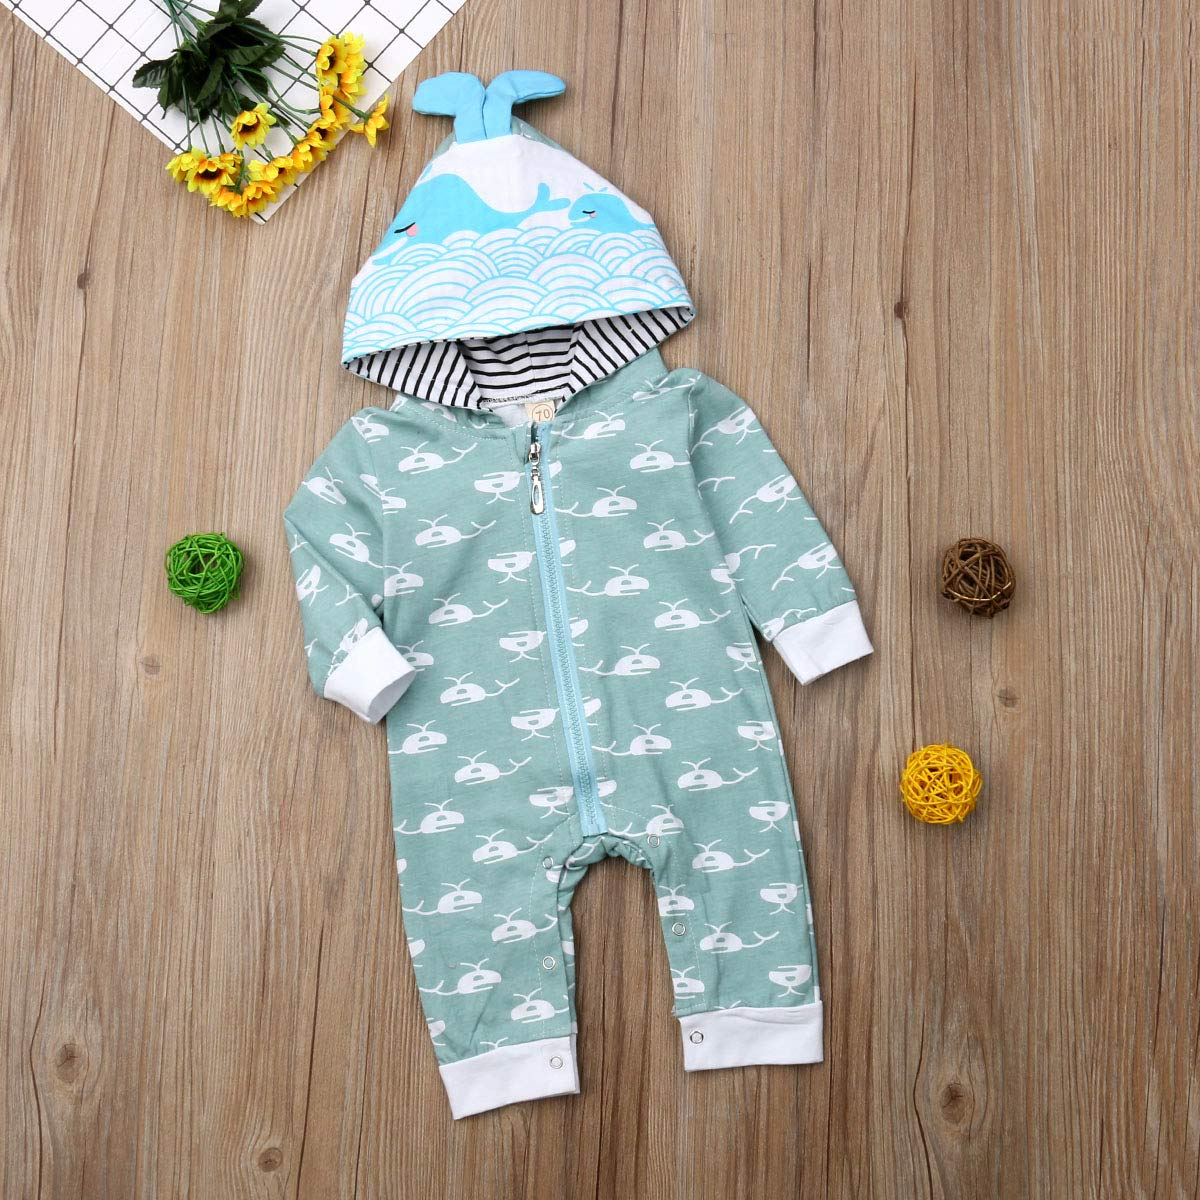 remeo suit Baby Boy Girl Cute Whale Pattern Hooded Romper Zipper Jumpsuit Clothes